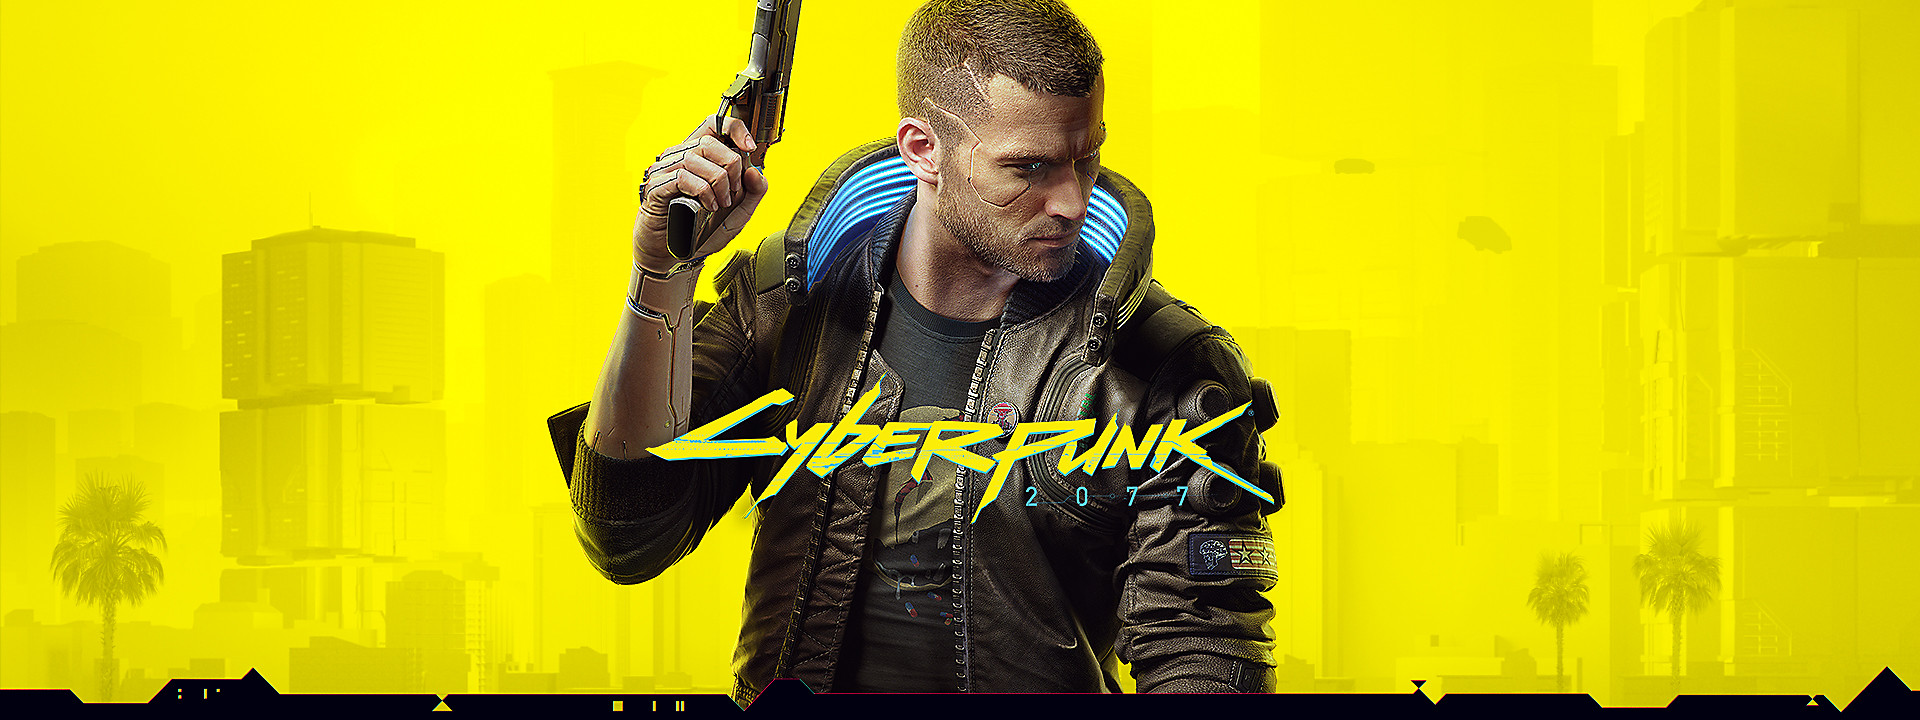 Cyberpunk 2077 - Coming April 16th